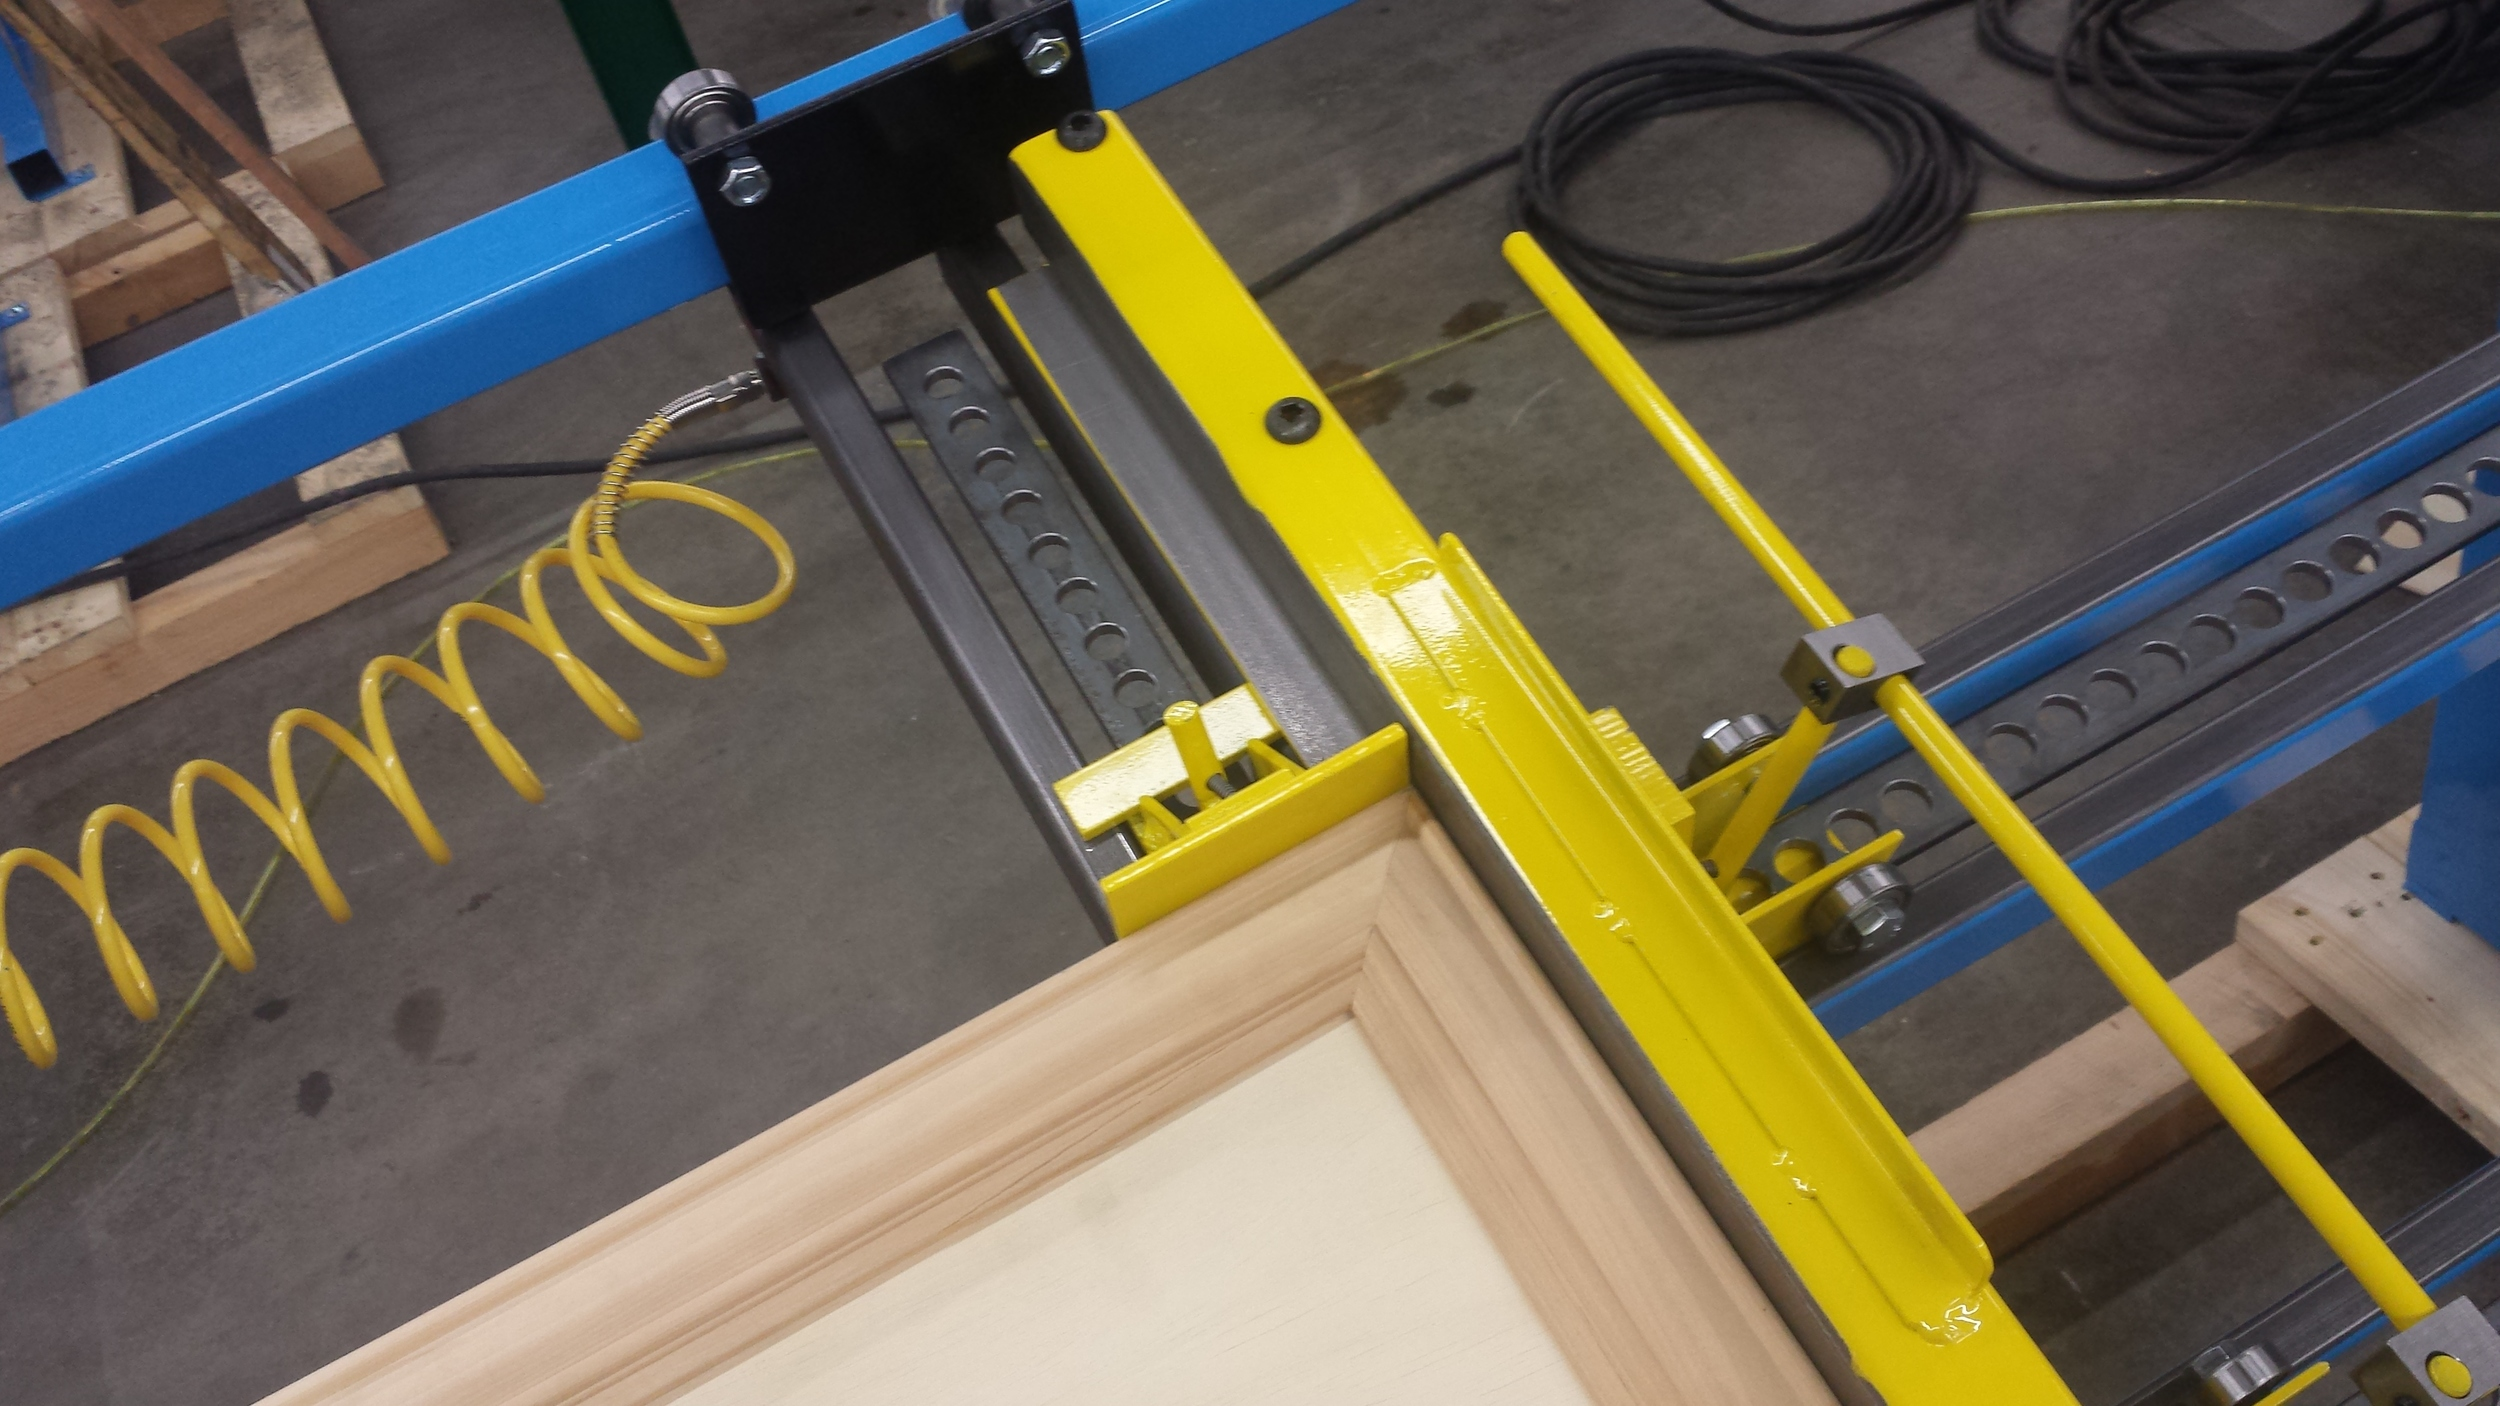 Miter door clamp controlspressure on both sides with pneumatic dialsallowing for fine adjustment.